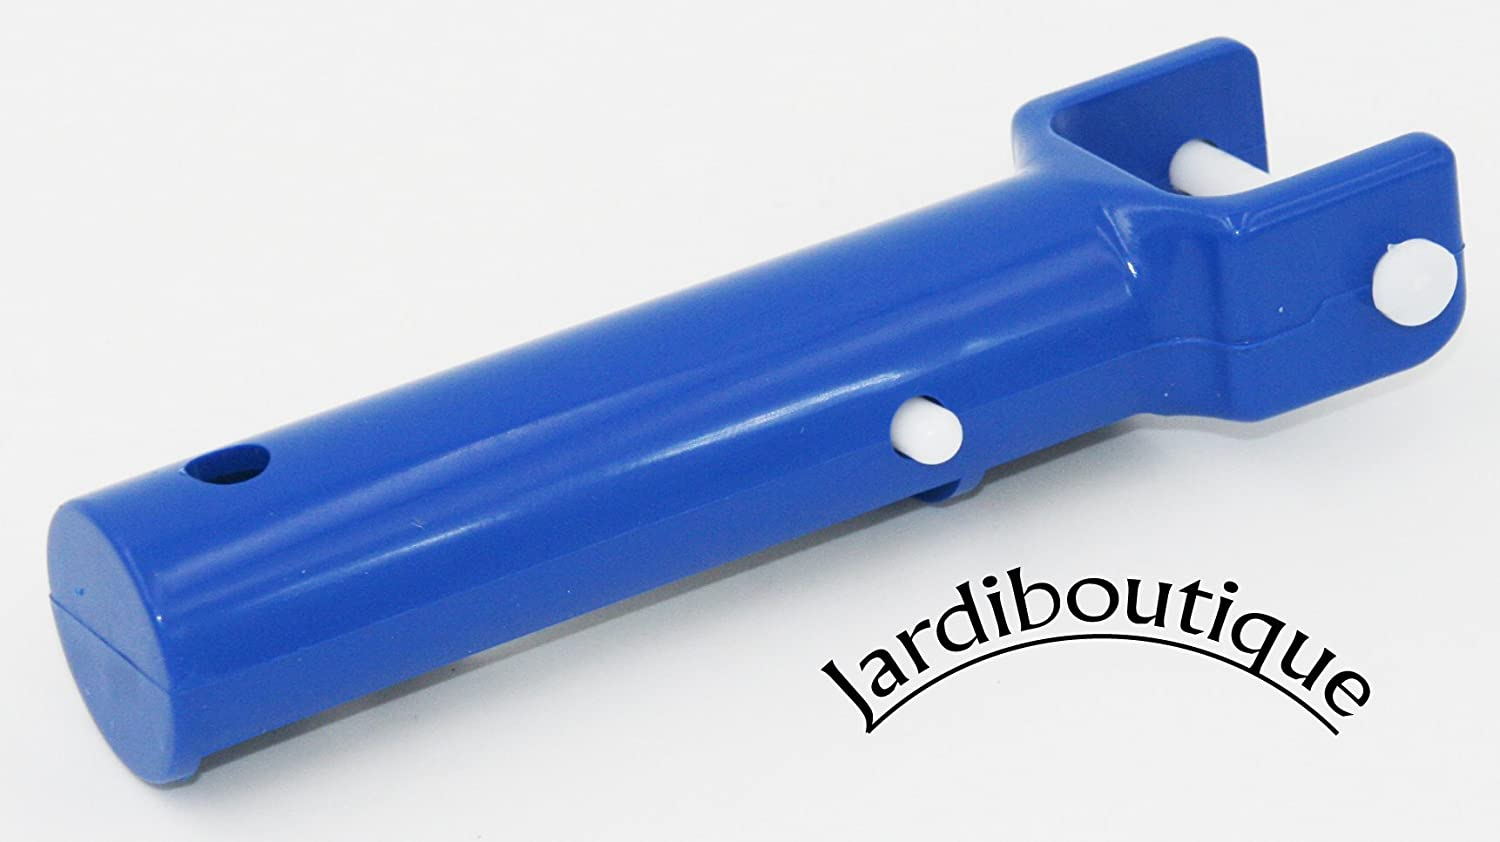 Jardiboutique - pool replacement handle - joint fastenings for a telescopic handle. sas mv